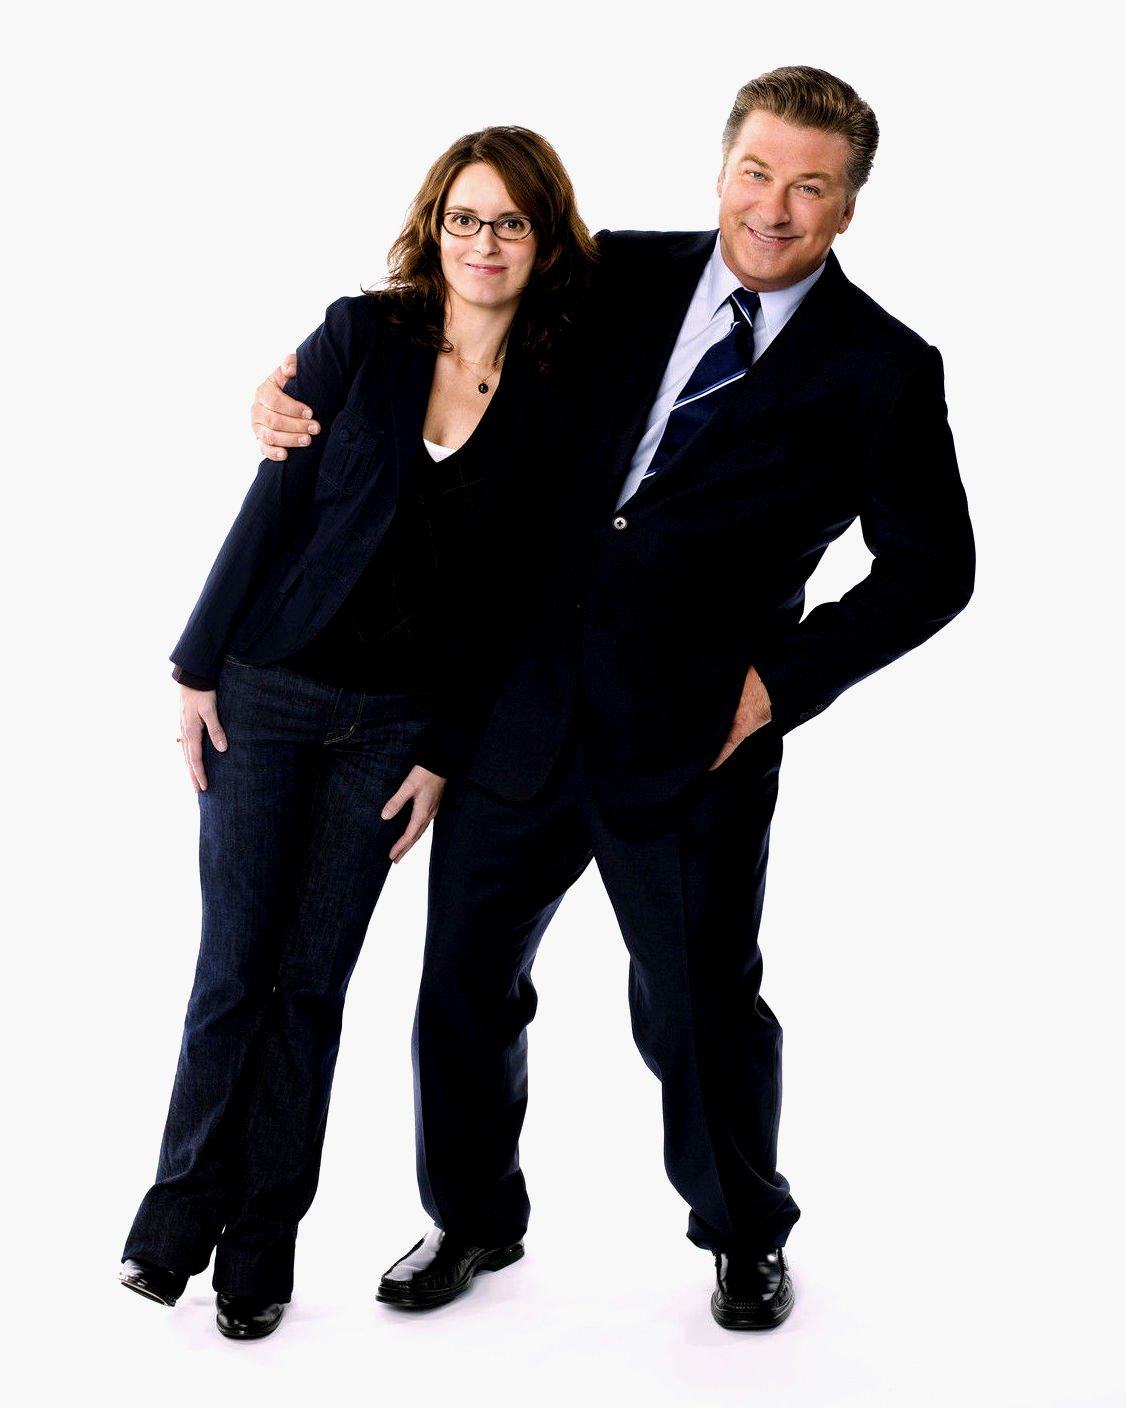 TINA FEY AND ALEC BALDWIN IN '30 ROCK' - 8X10 PUBLICITY PHOTO (OP-011)